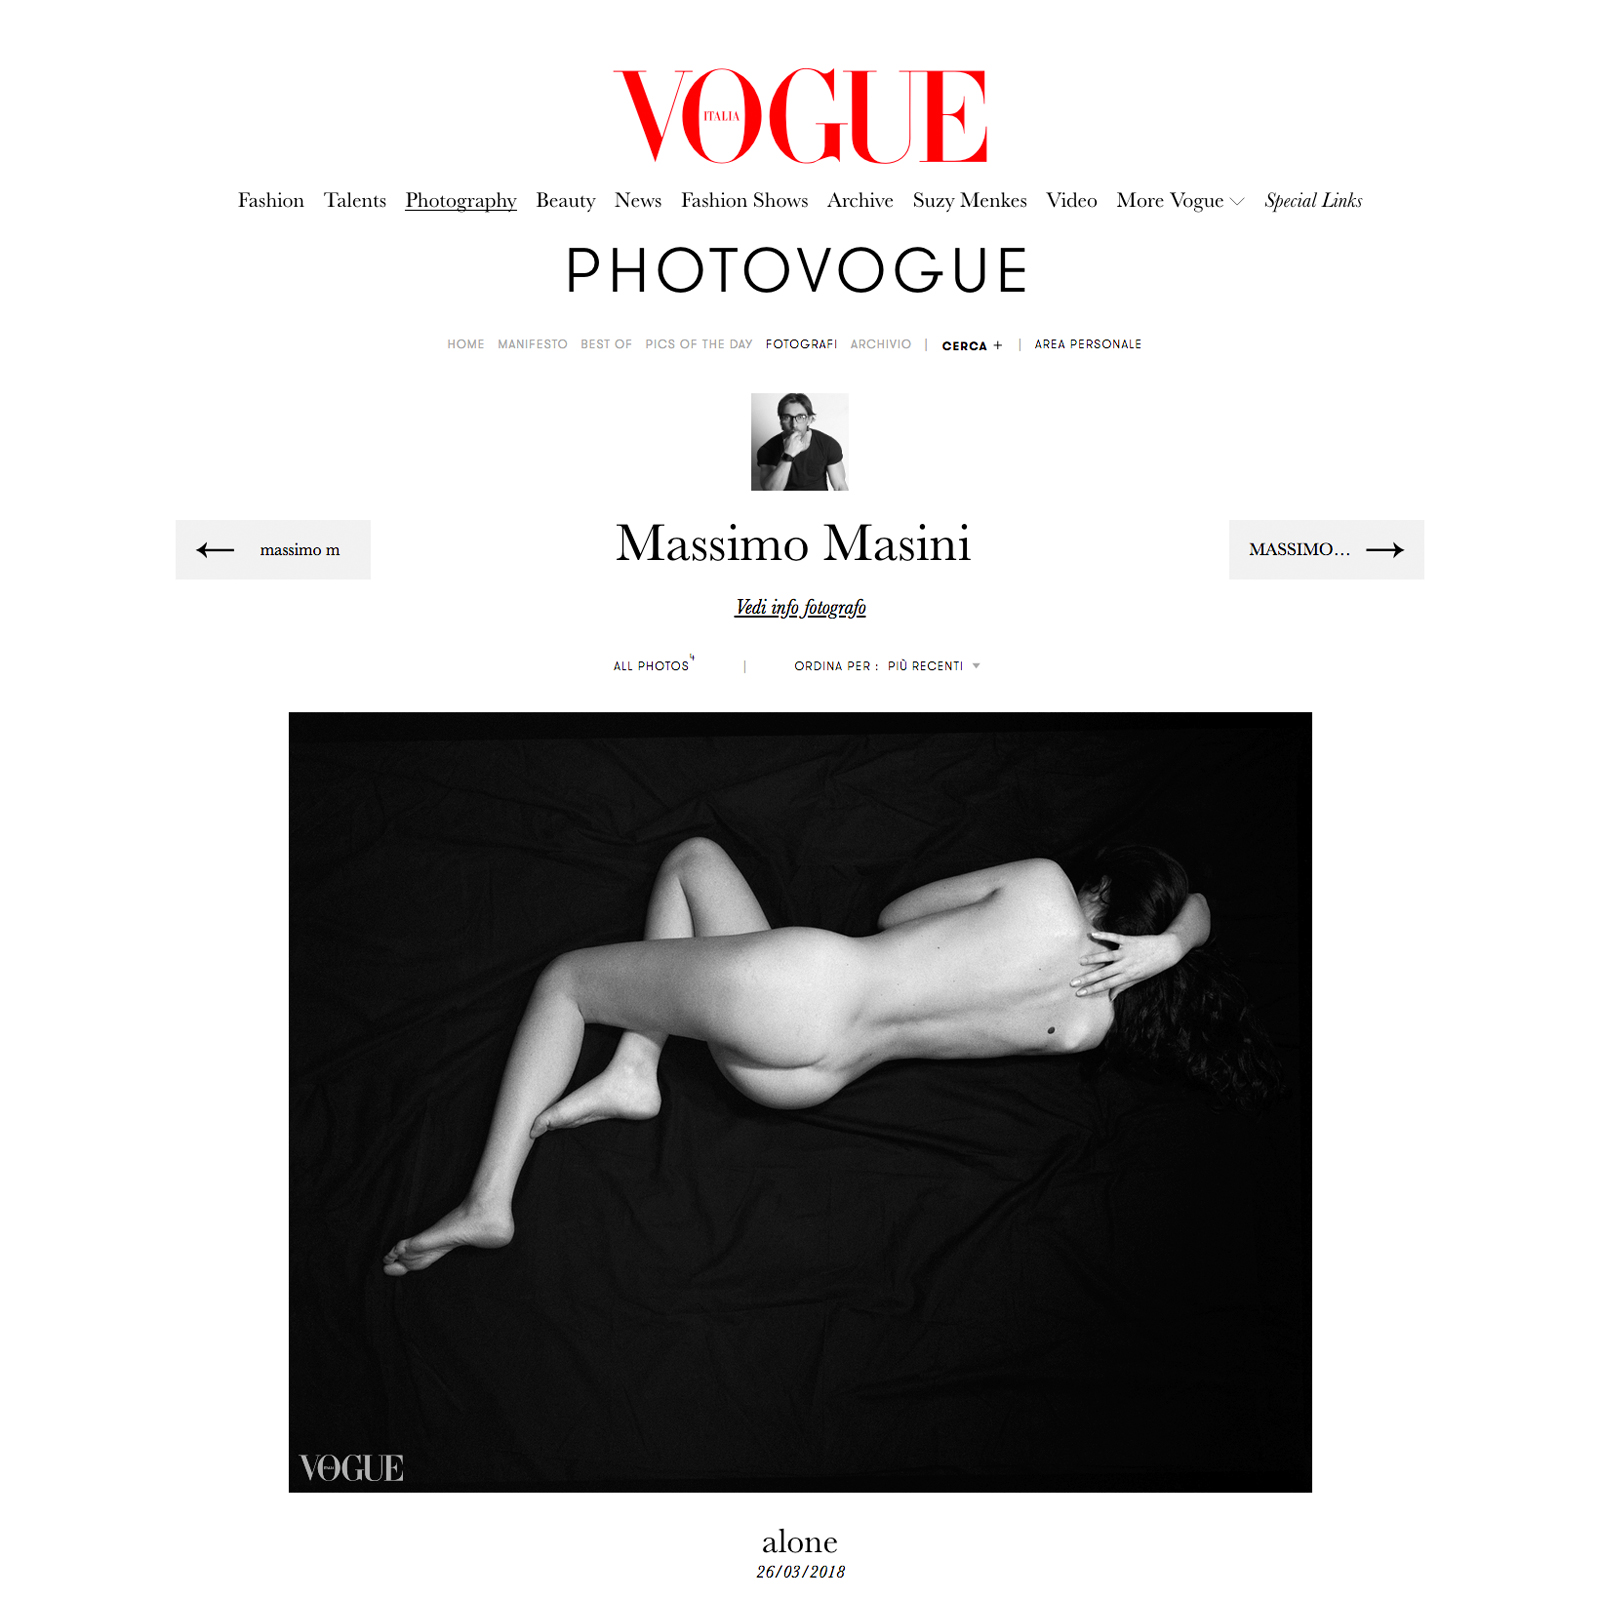 VOGUE alone layout